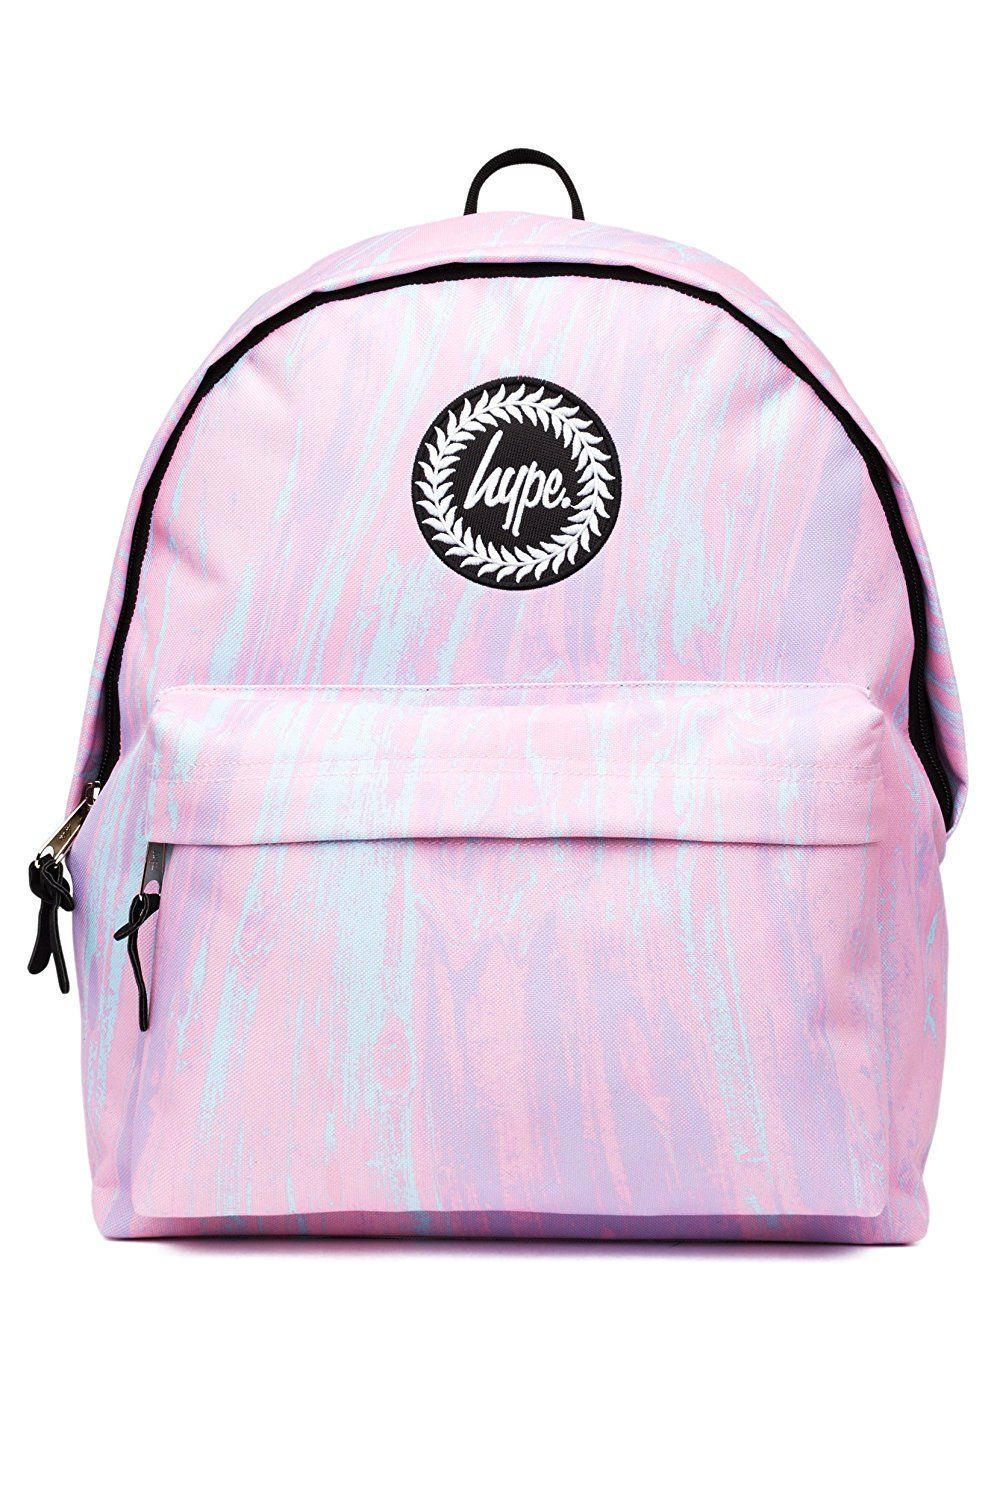 a3072ffdfe HYPE Backpack Rucksack SCHOOL Bag for Girls Boys